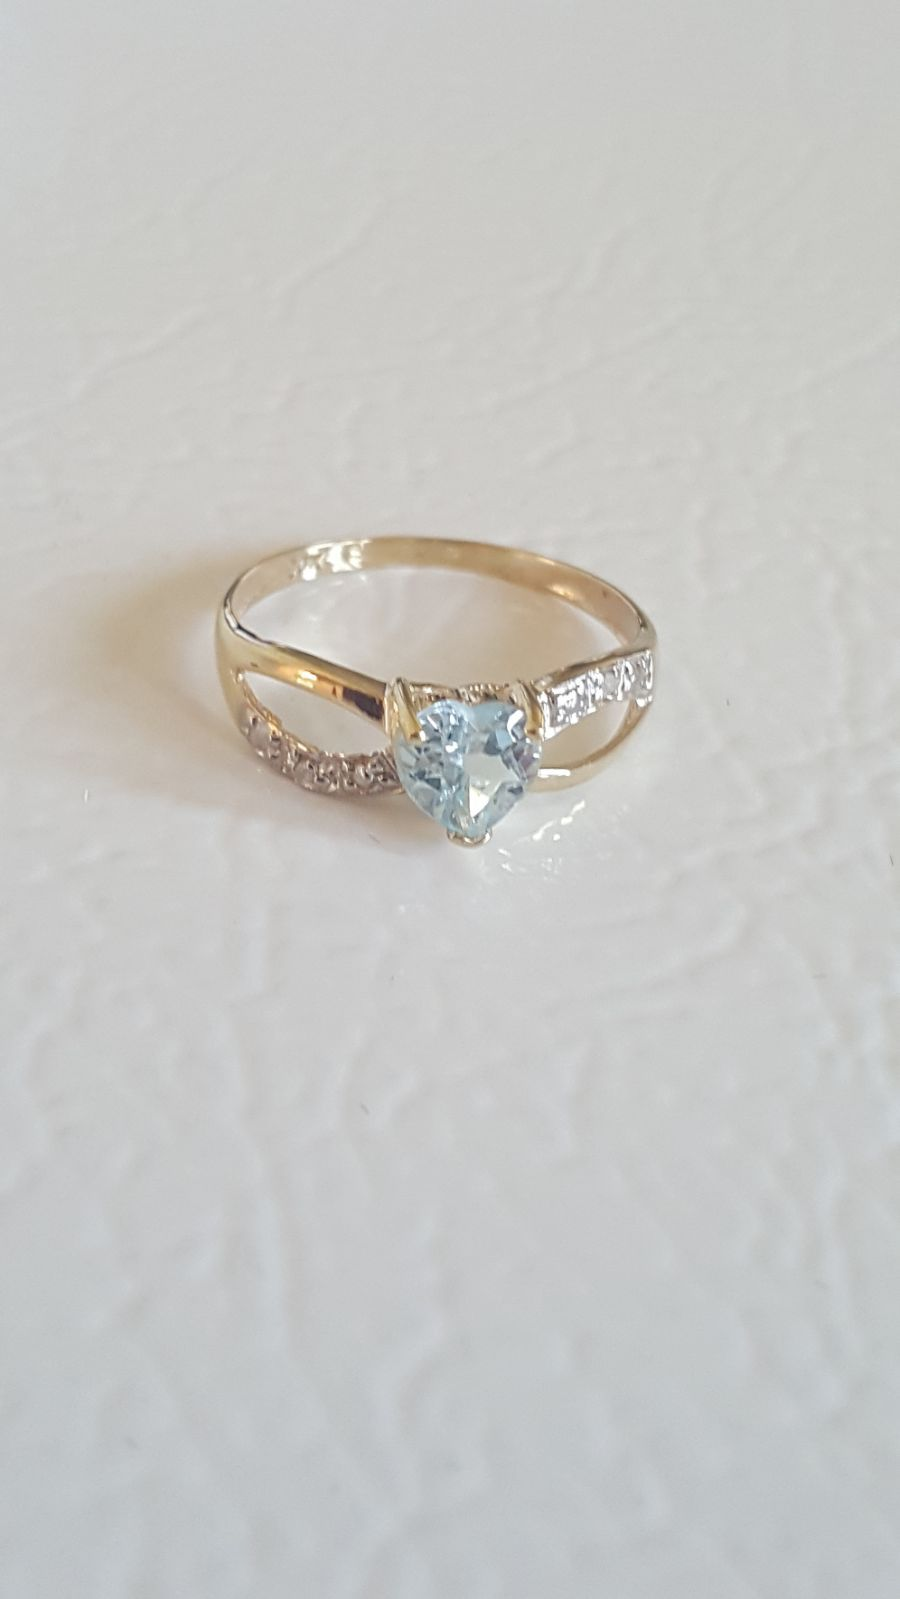 Price Is Firm 10kt Gold Blue Topaz Ring Sz 7 5 Xrayed And Verified As 10kt Gold Natural Diamond Tested Genuine Blue Topaz Blue Topaz Ring 10kt Gold Rings